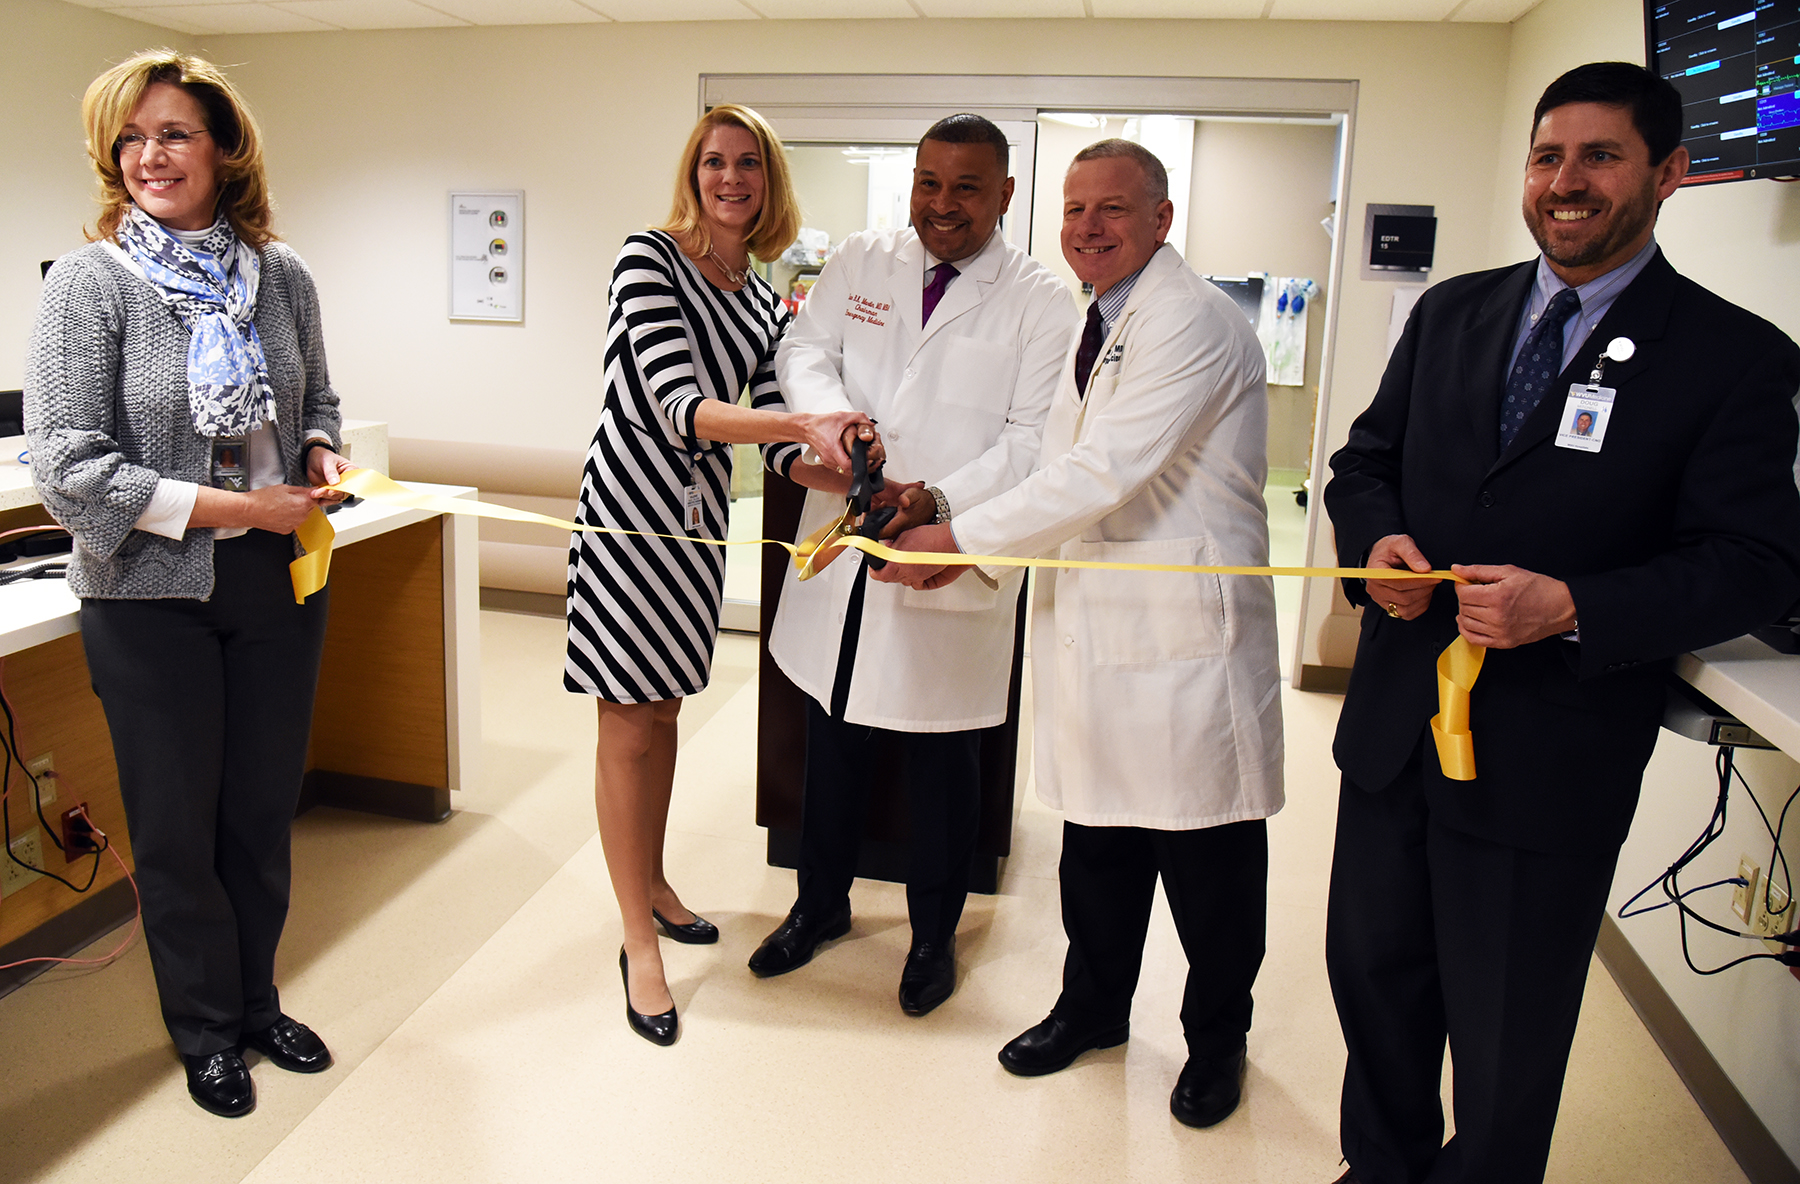 From left to right) Judie Charlton, M.D., WVU Medicine chief medical officer; Valerie Boley,R.N., B.S.N., director of Emergency Services; Ian B.K. Martin, M.D., M.B.A., chair of Emergency Medicine; Owen Lander, M.D., medical director of the WVU Medicine Center for Emergency Medicine; and Doug Mitchell, B.S.N., M.B.A., chief nursing officer, cut the ribbon to officially open the newly renovated WVU Center for Emergency Medicine.